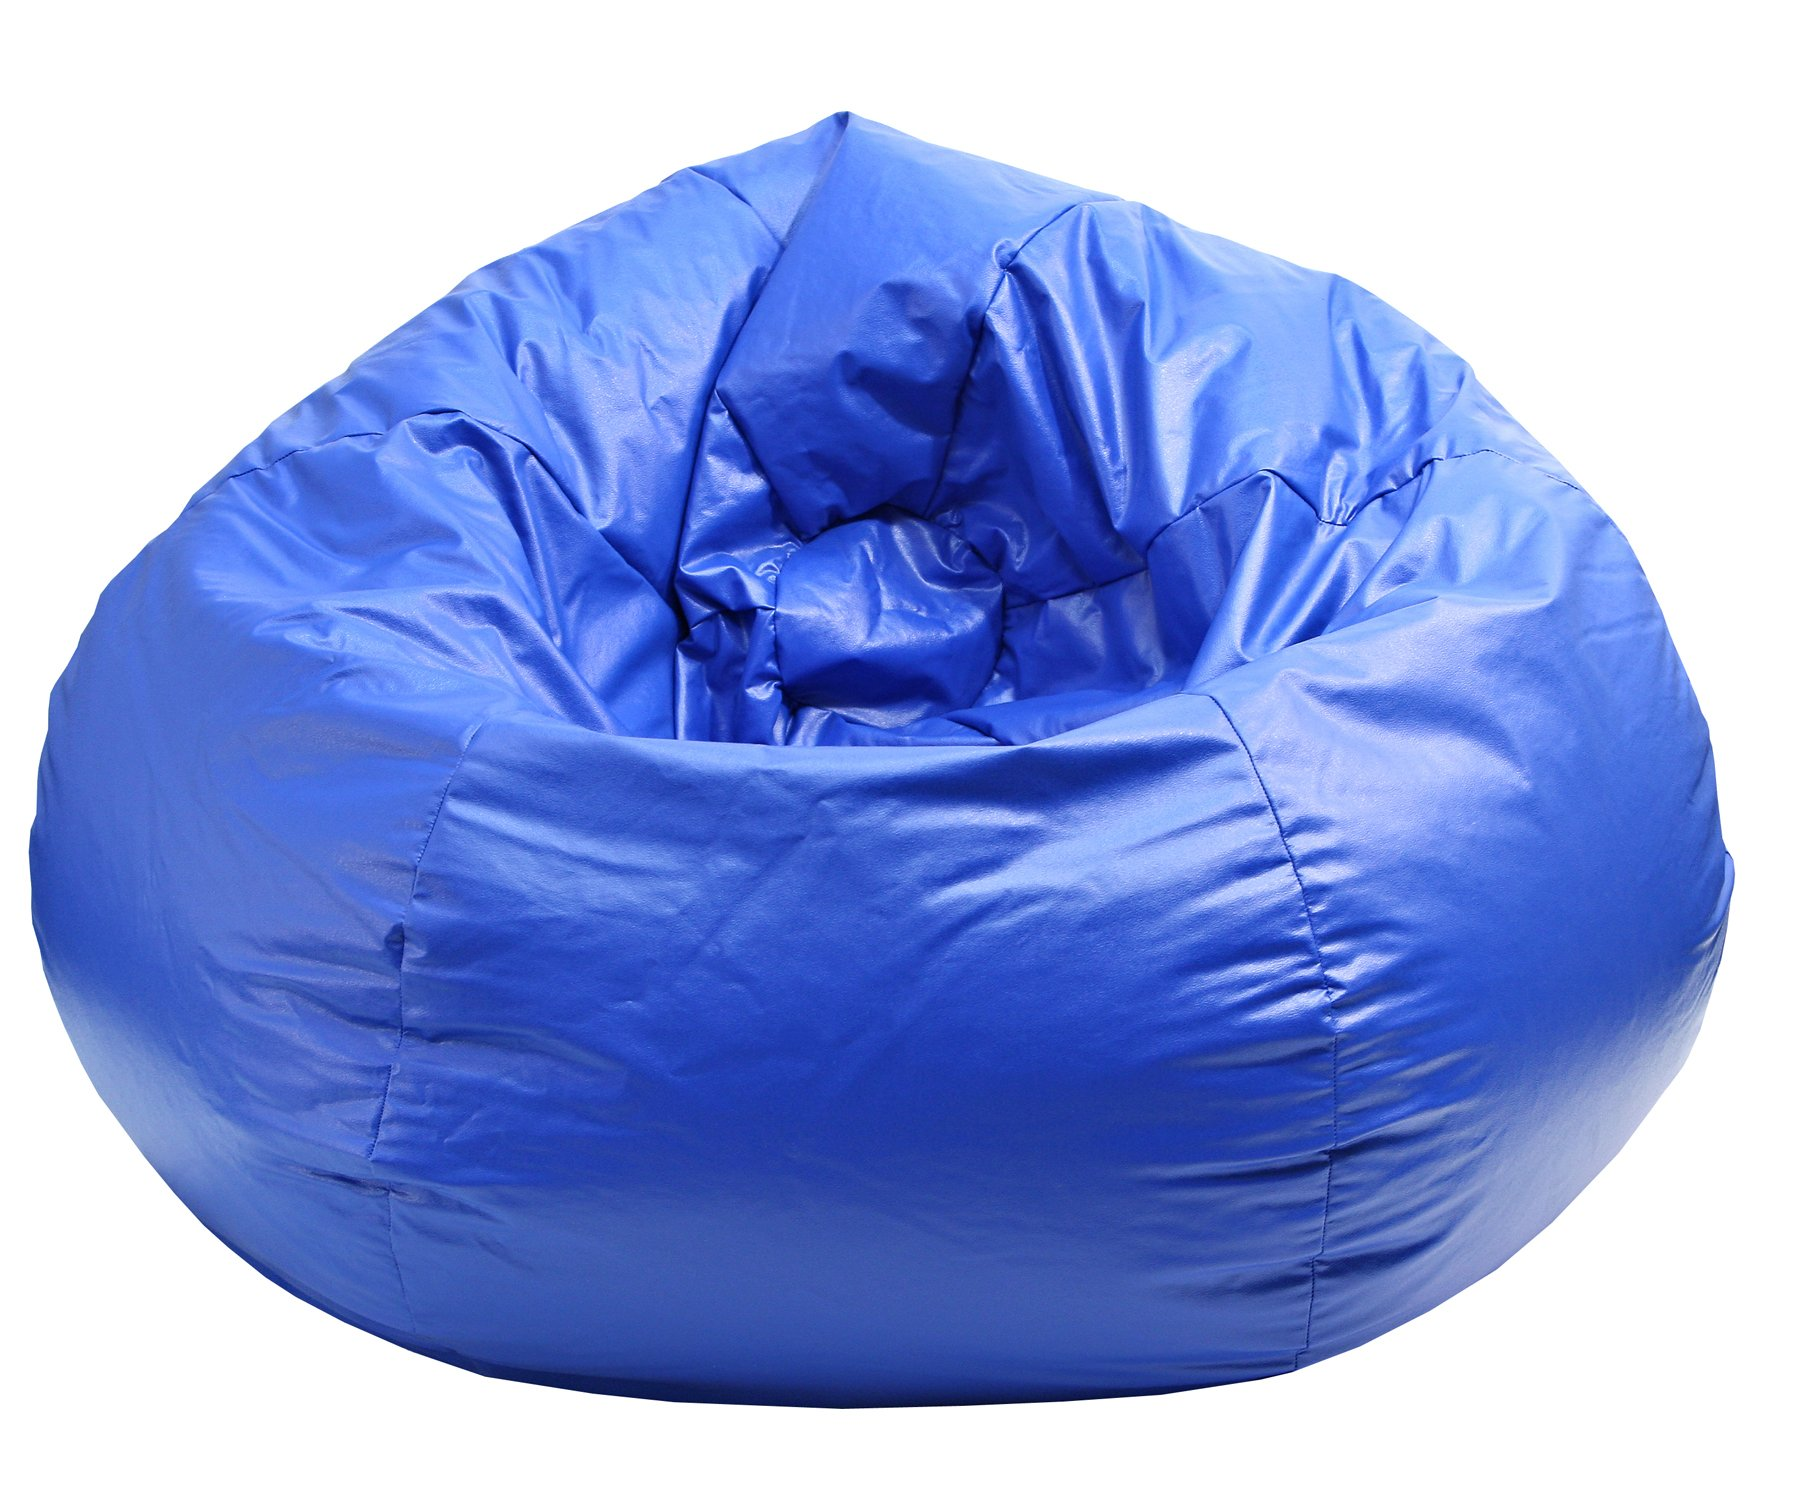 Gold Medal Bean Bags Wet Look Vinyl Bean Bag, XX-Large, Blue